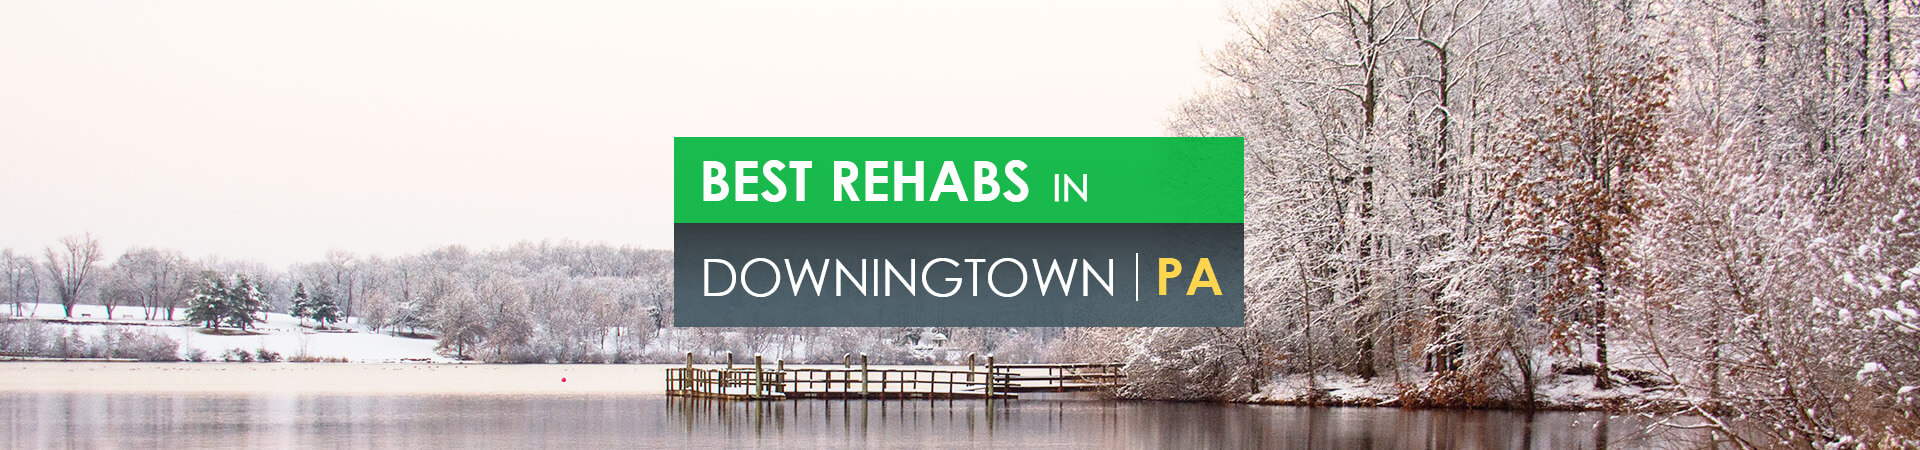 Best rehabs in Downingtown, PA